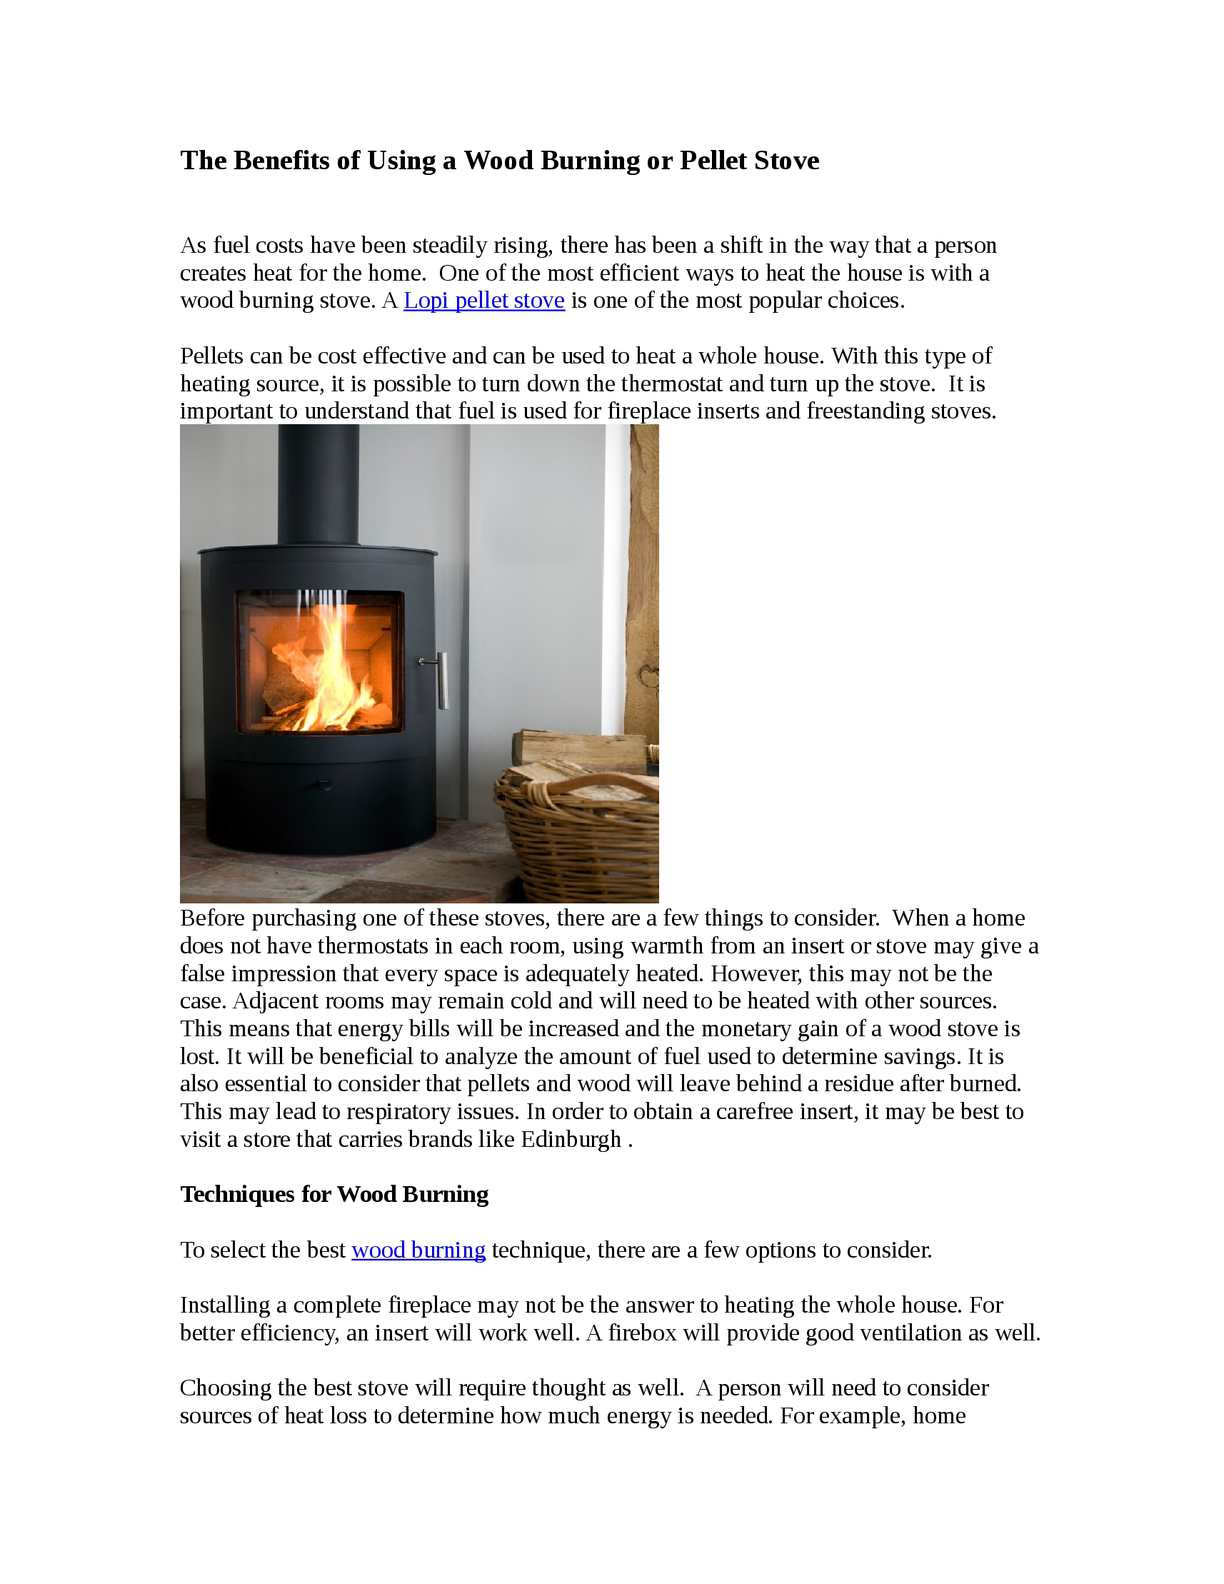 Calameo The Benefits Of Using A Wood Burning Or Pellet Stove